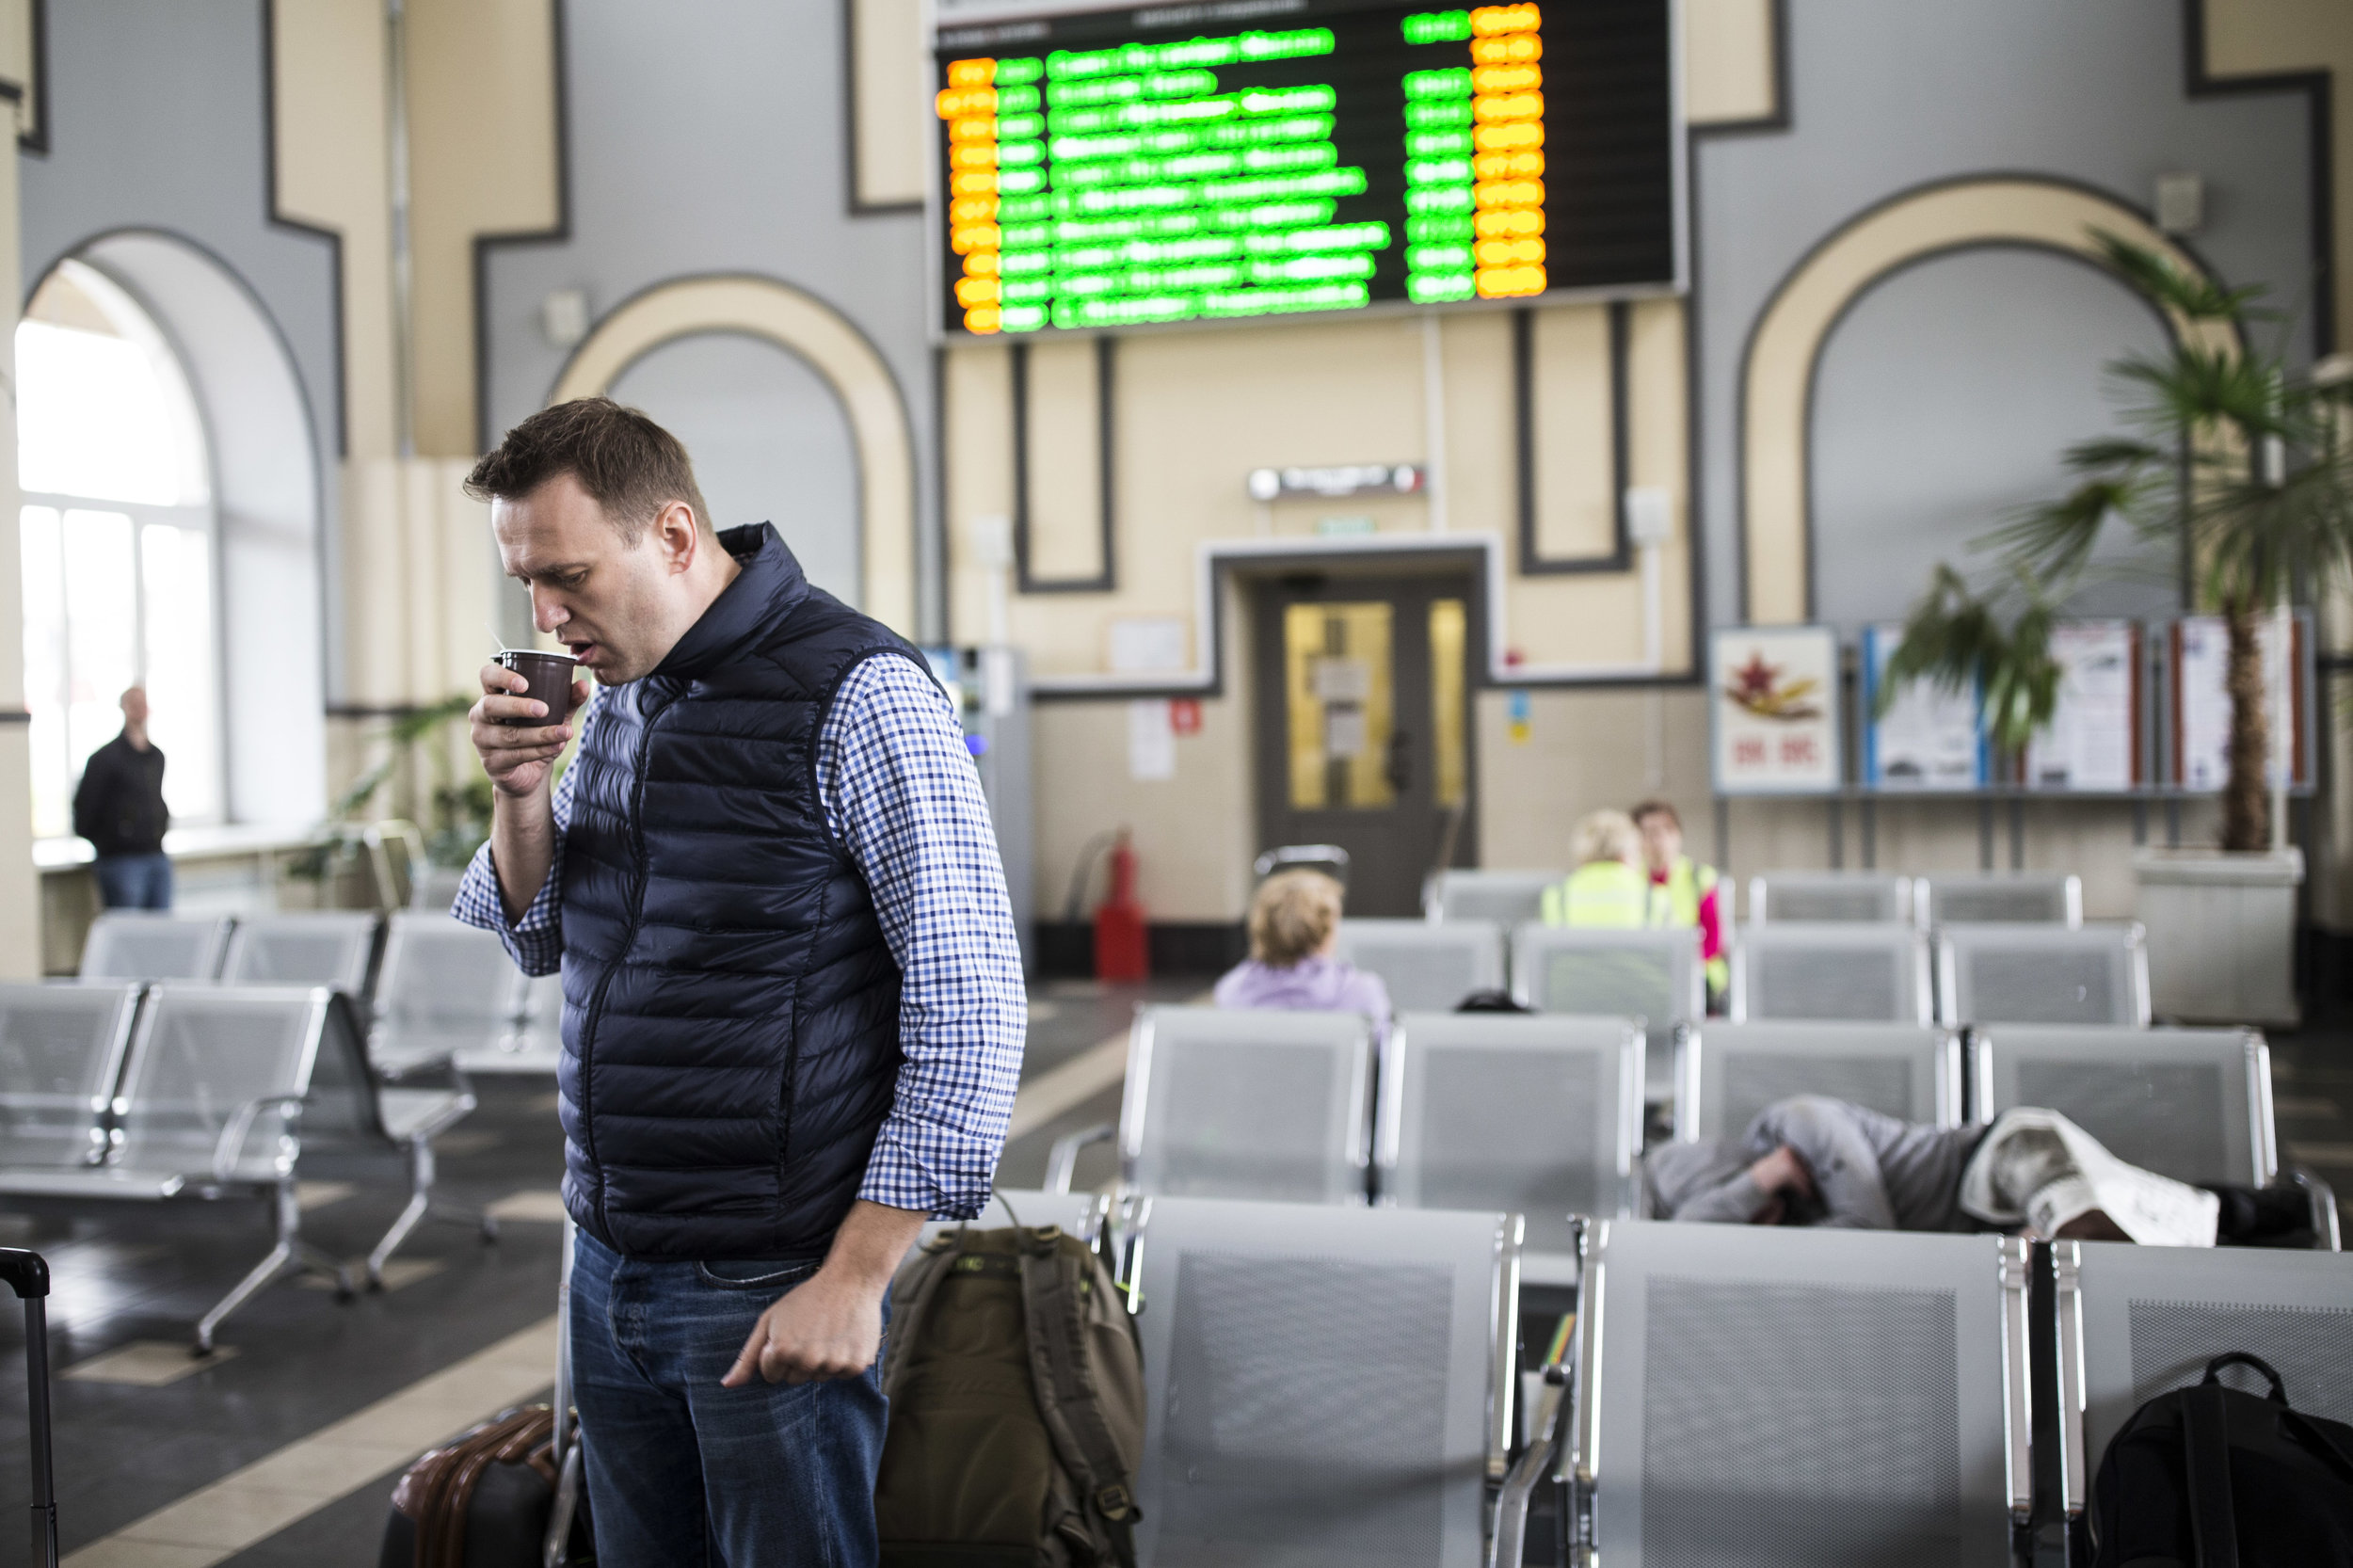 Alexey Navalny sips tea at the railroad station in Bologoye as he waits for a train to Tver